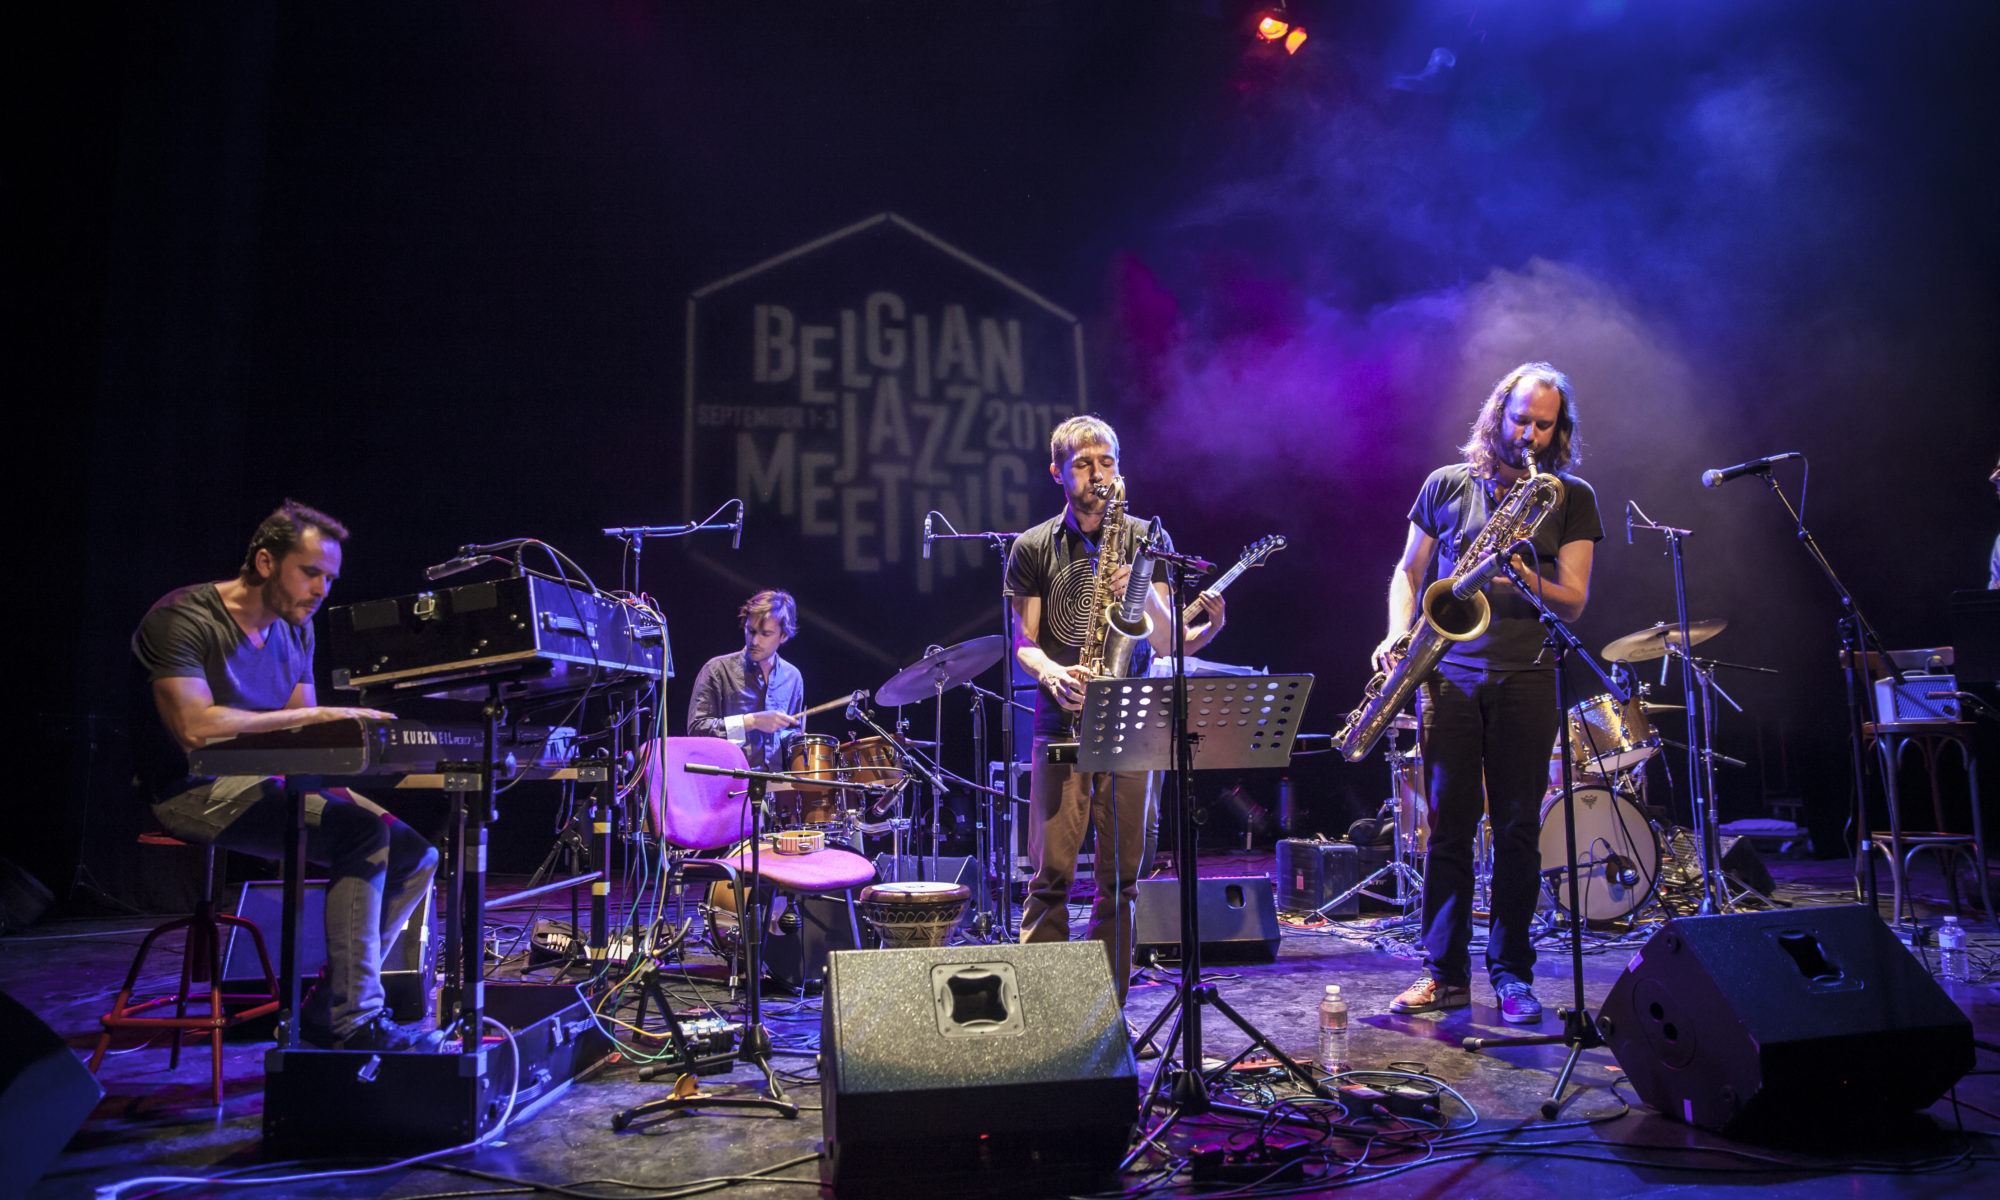 Belgian Jazz Meeting 2019